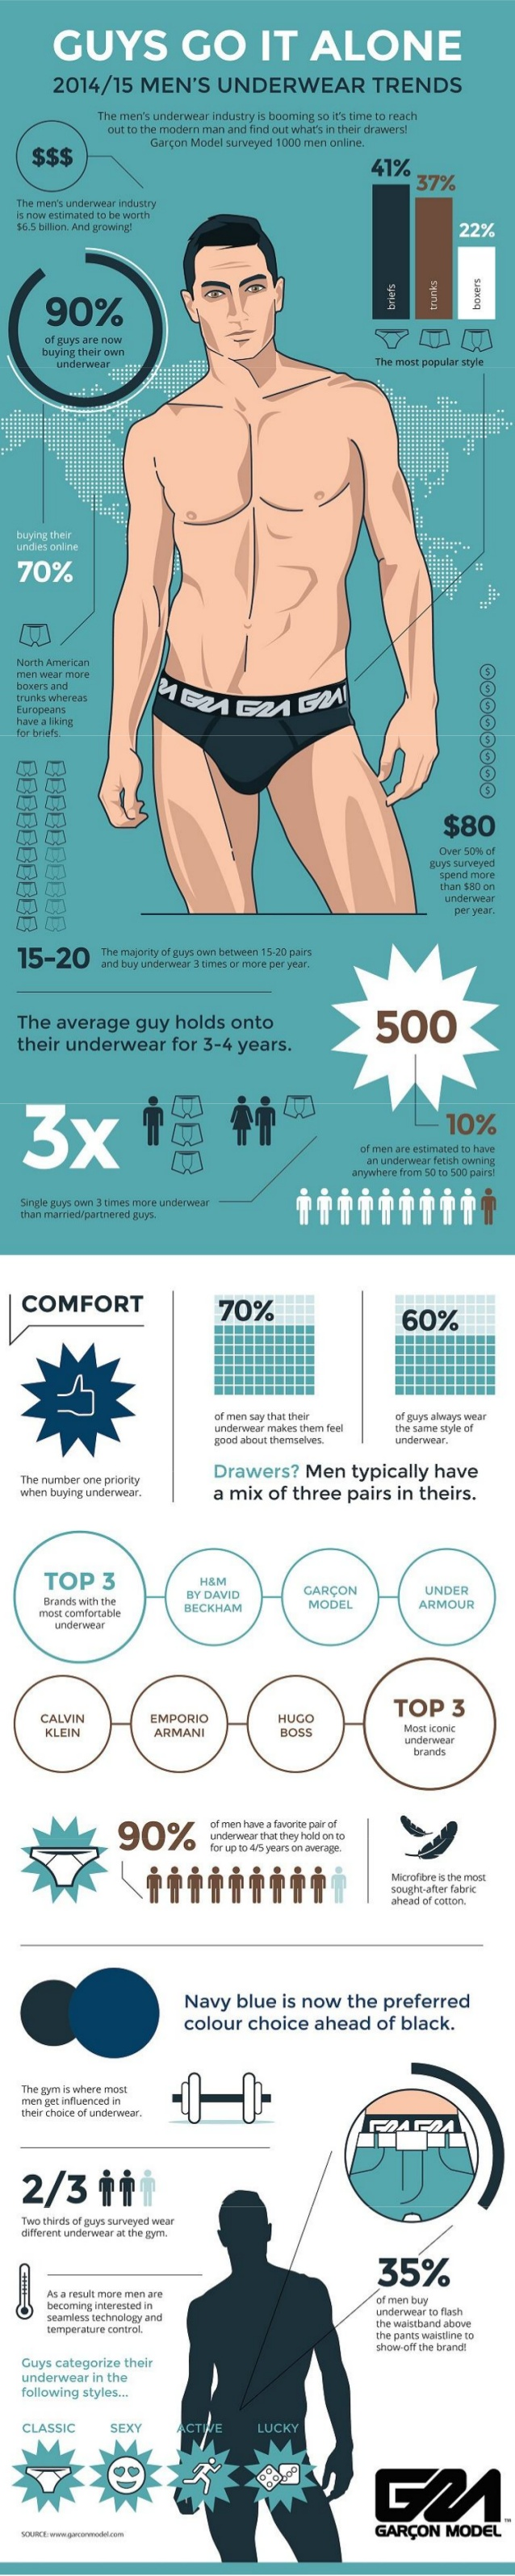 Infographic Male Underwear: Source - Slideshare